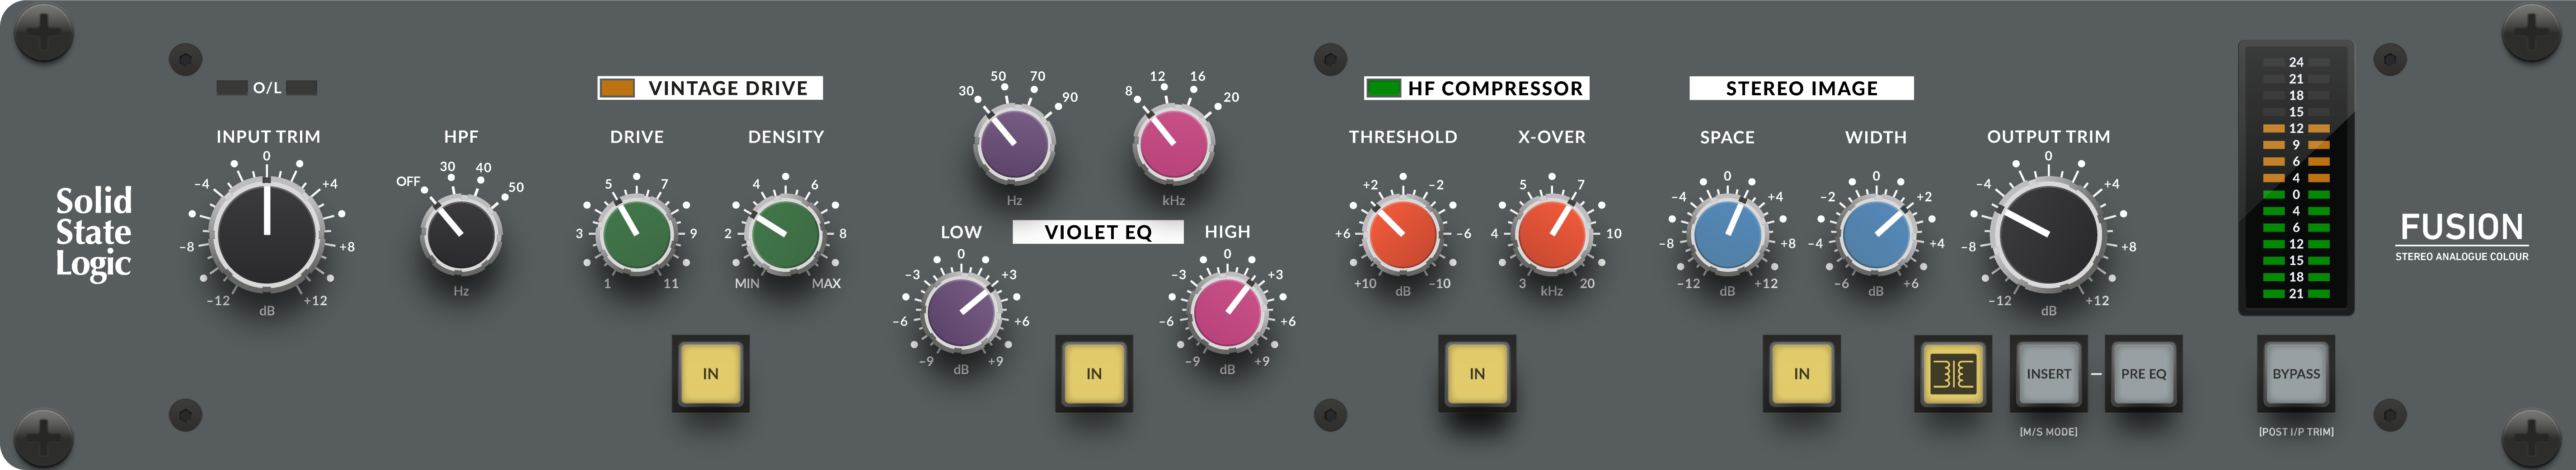 KMR Audio SSL Fusion Graphic